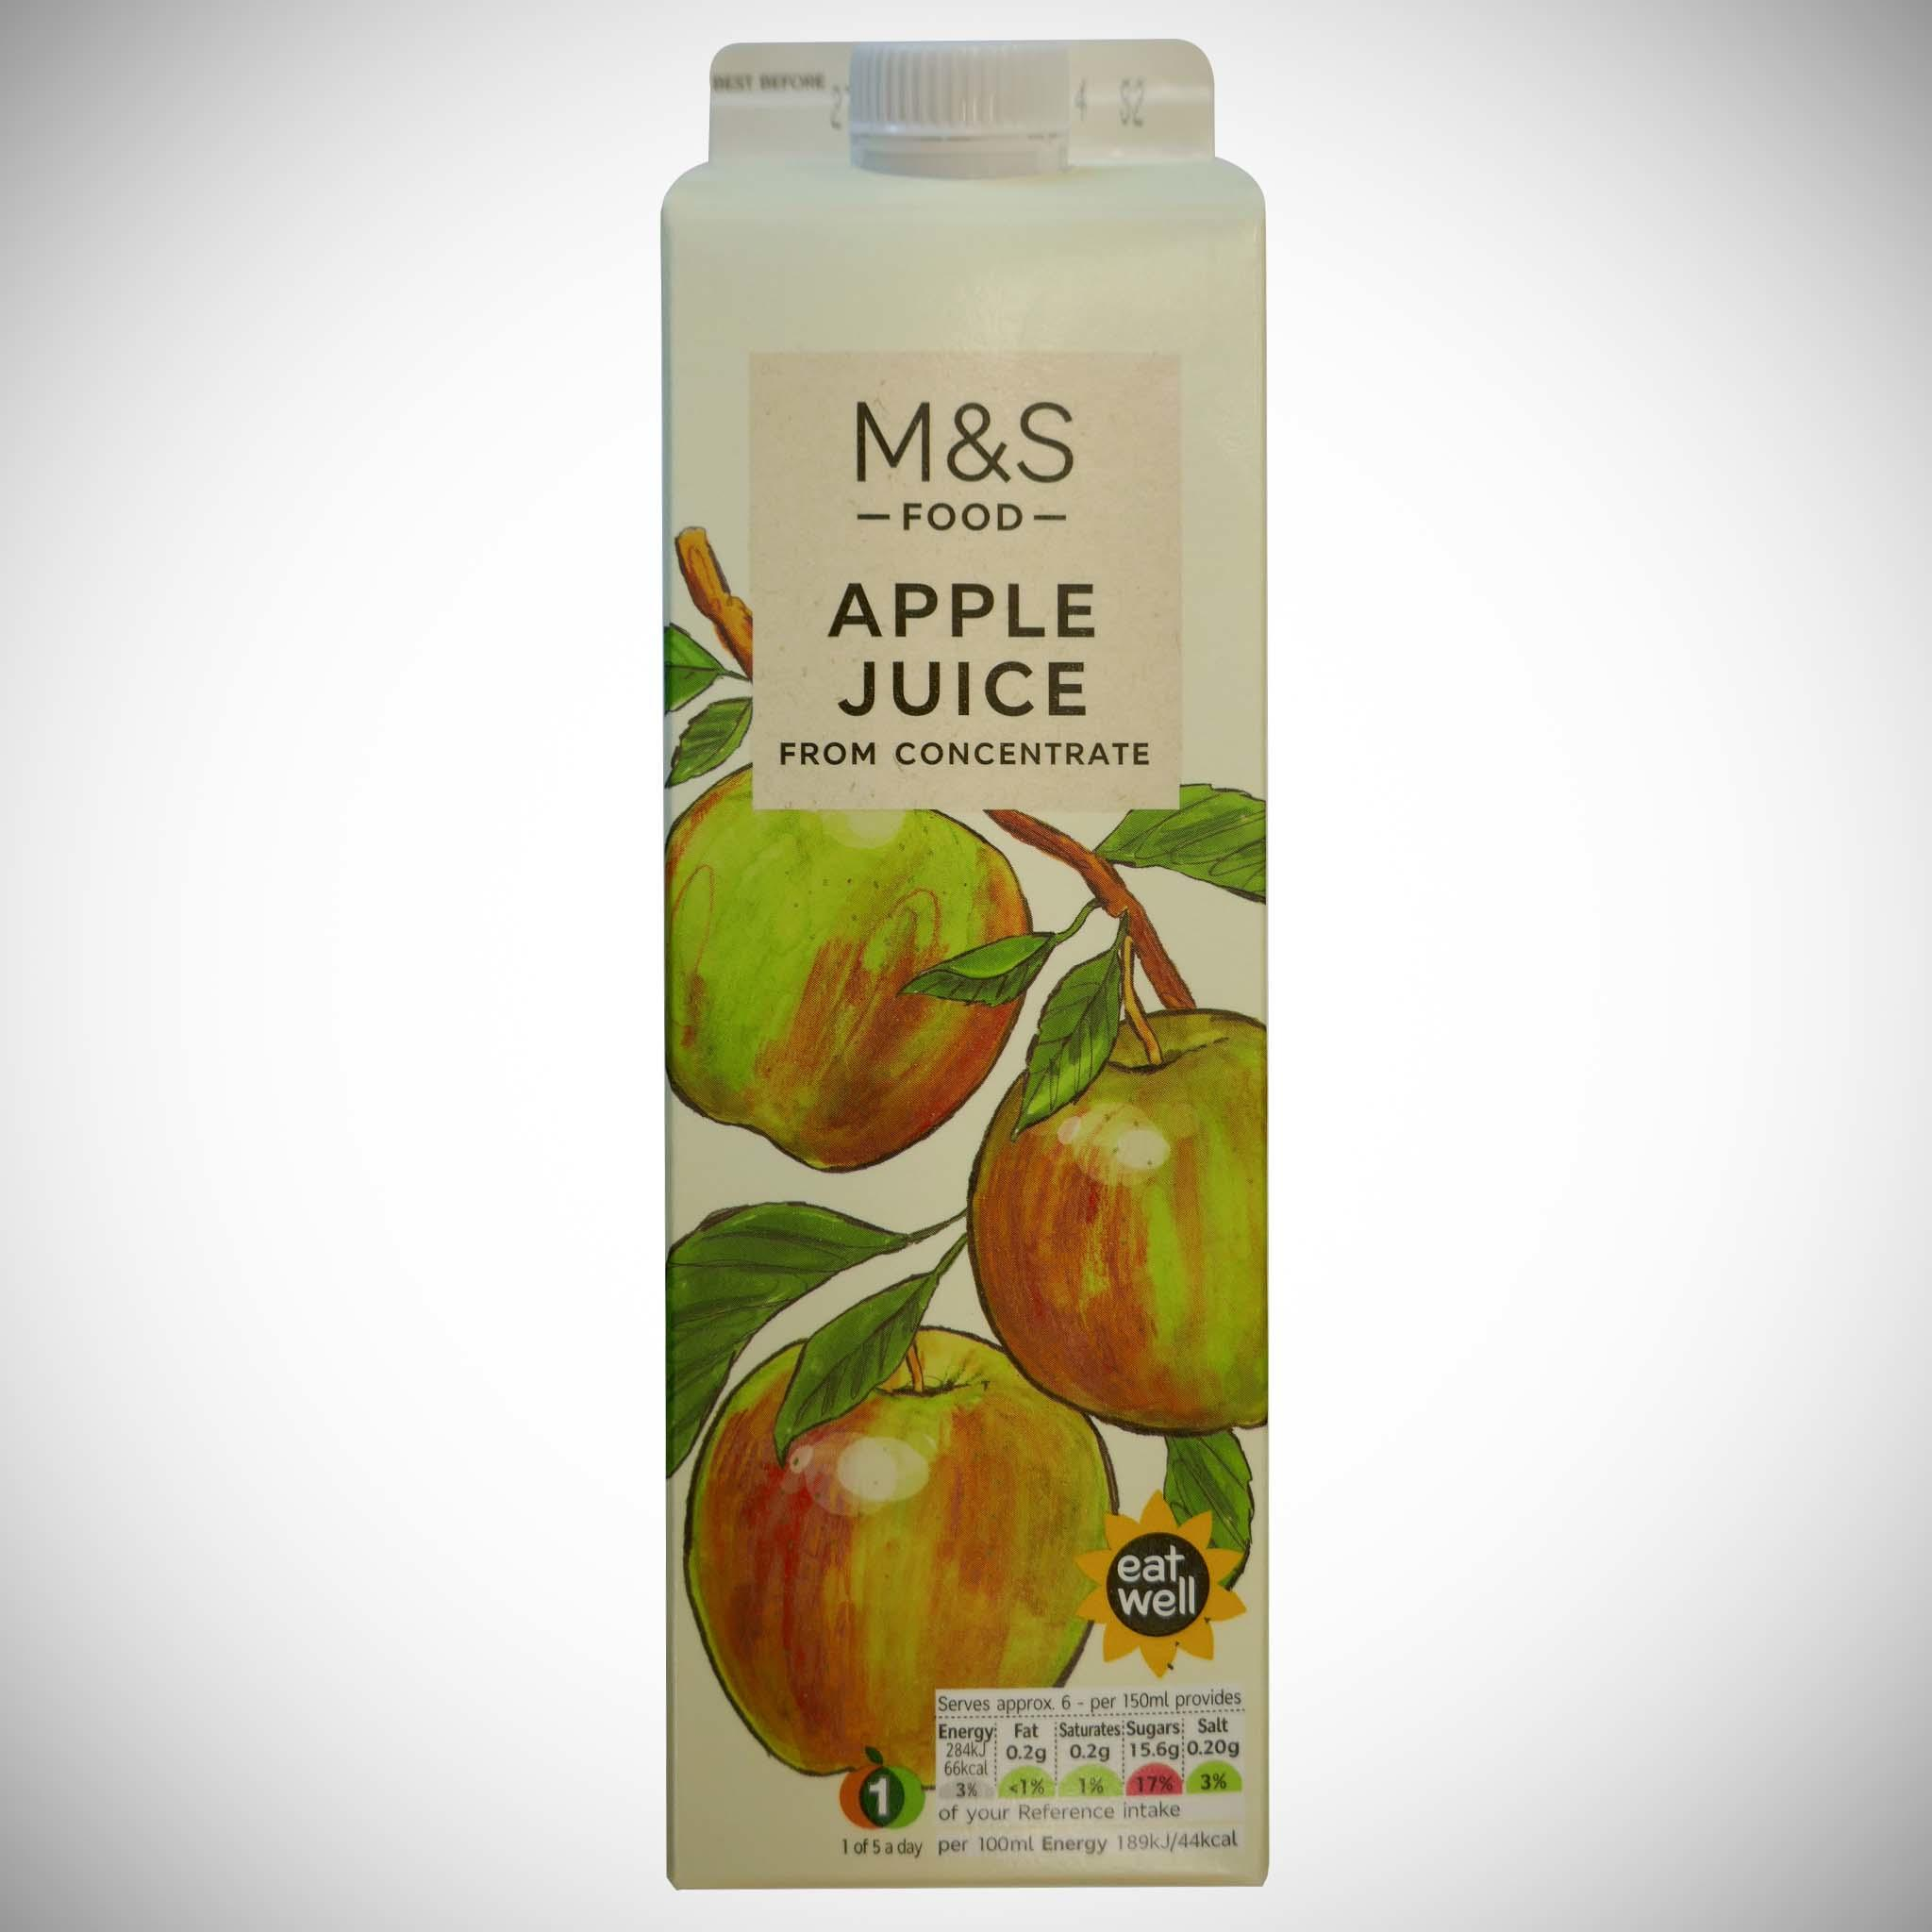 Apple Juice From Concentrate 1 litre